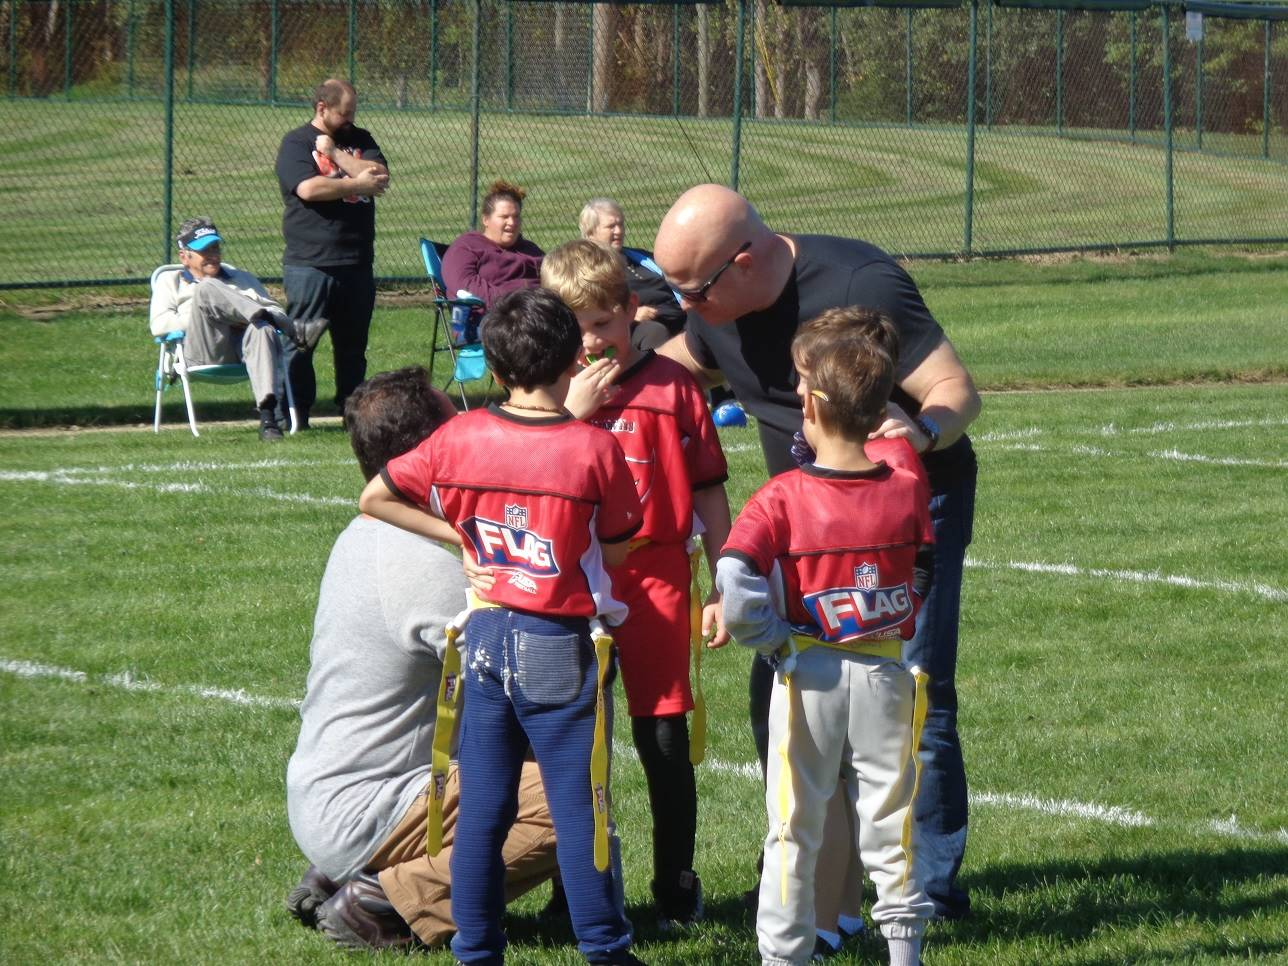 Volunteer coachings flag football players